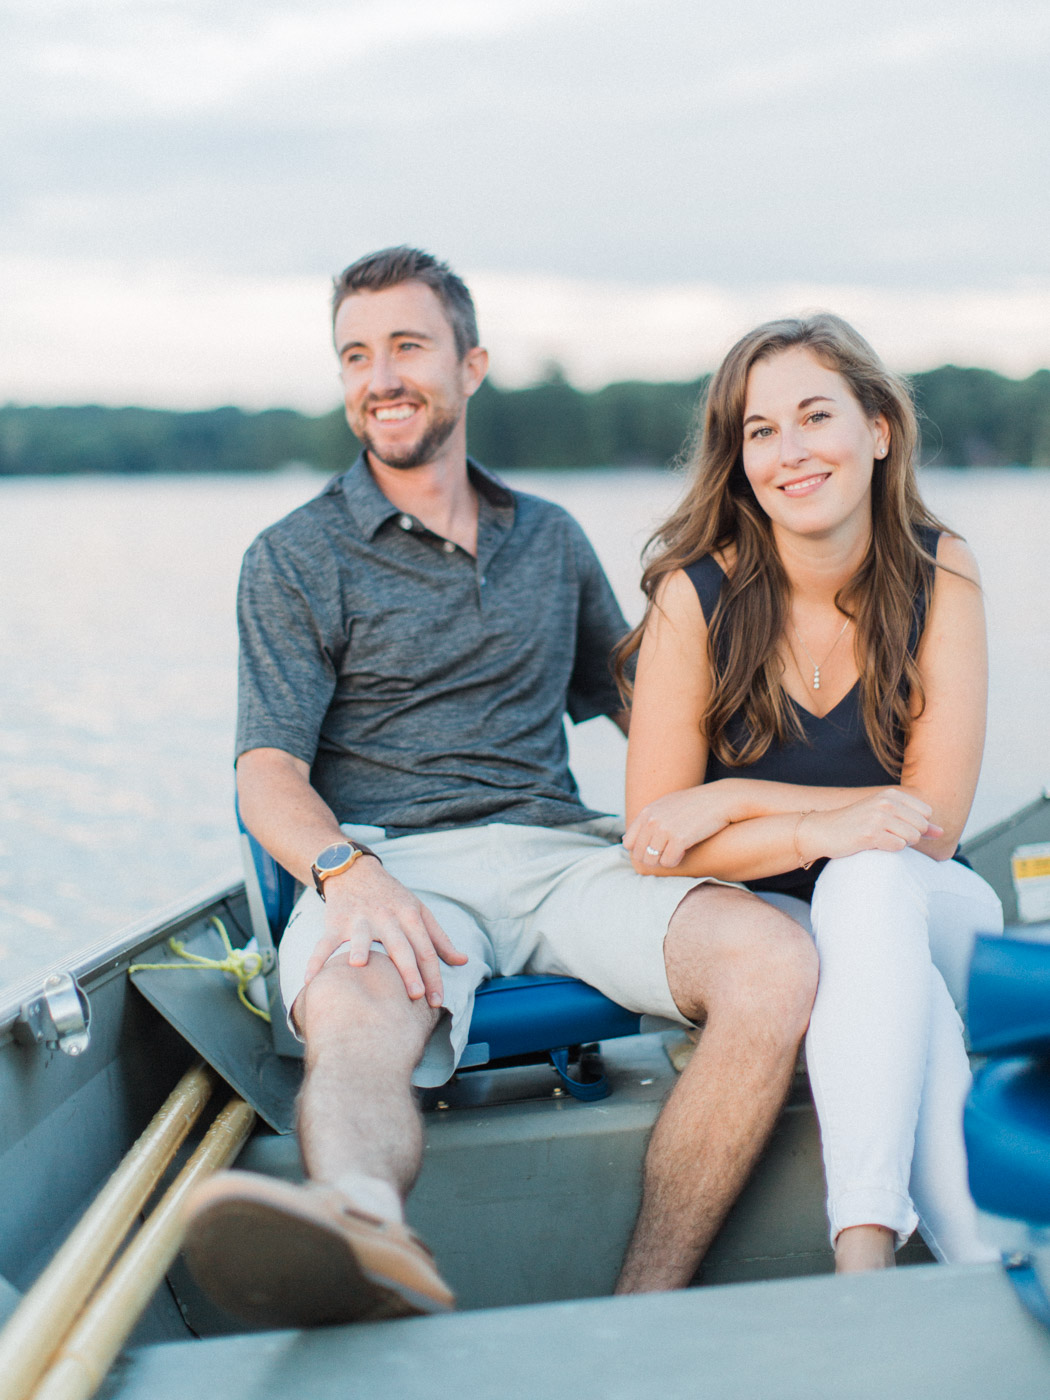 muskoka-wedding-photographer-adventurous-couples-engagement-session-lake-86.jpg